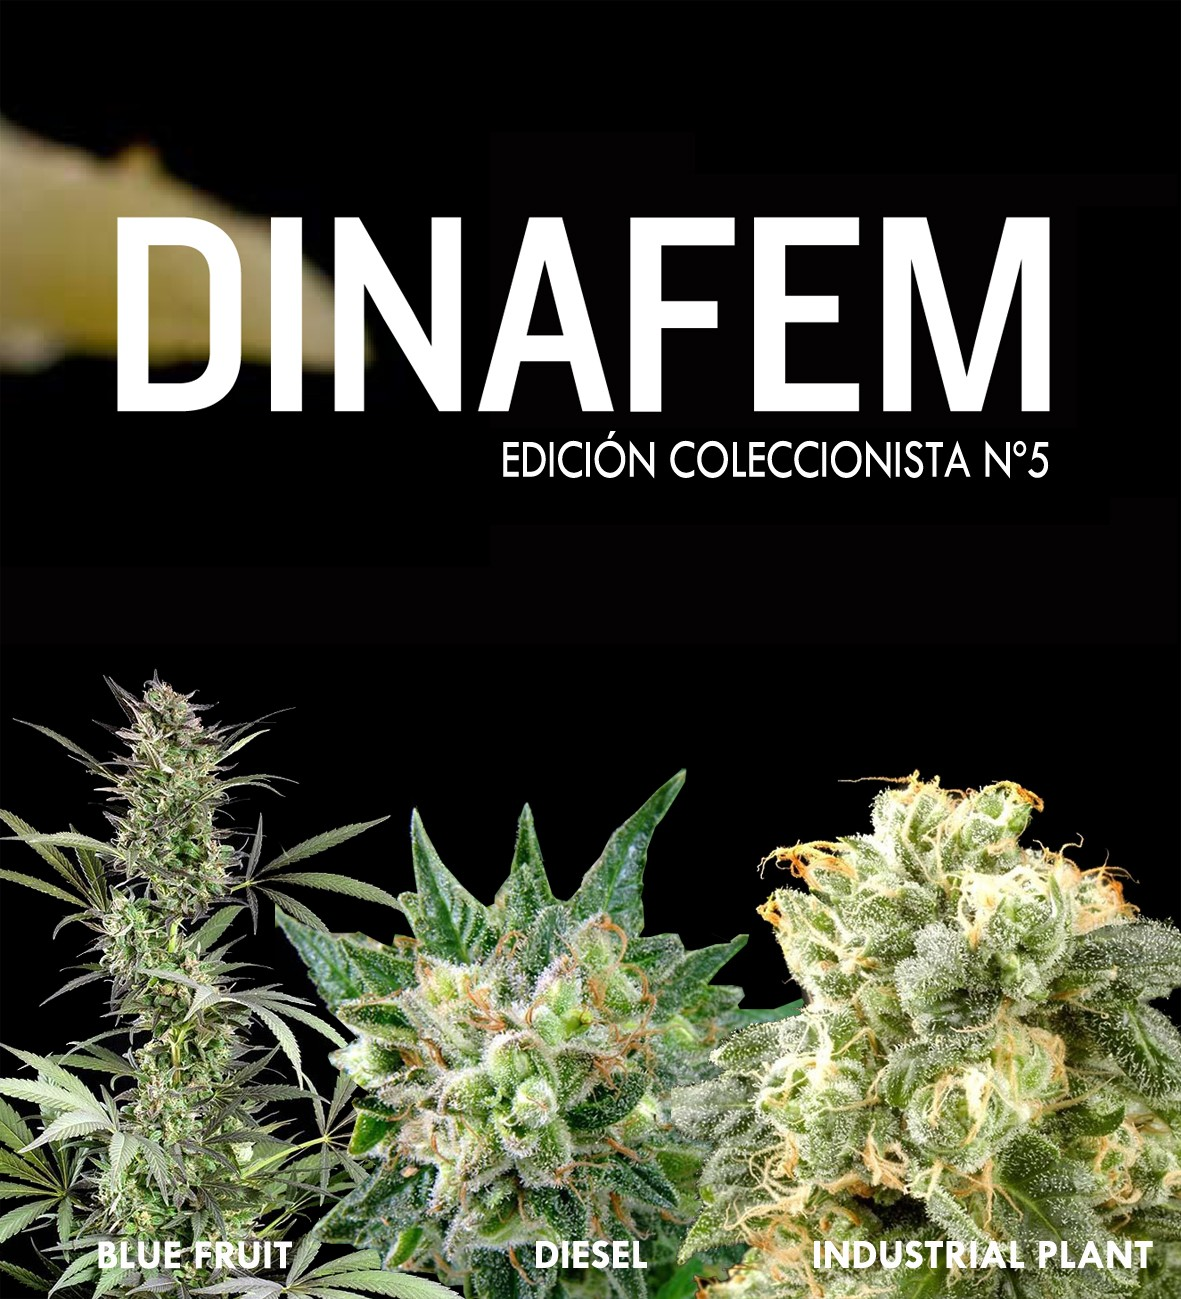 Dinafem collector #5 6 seeds